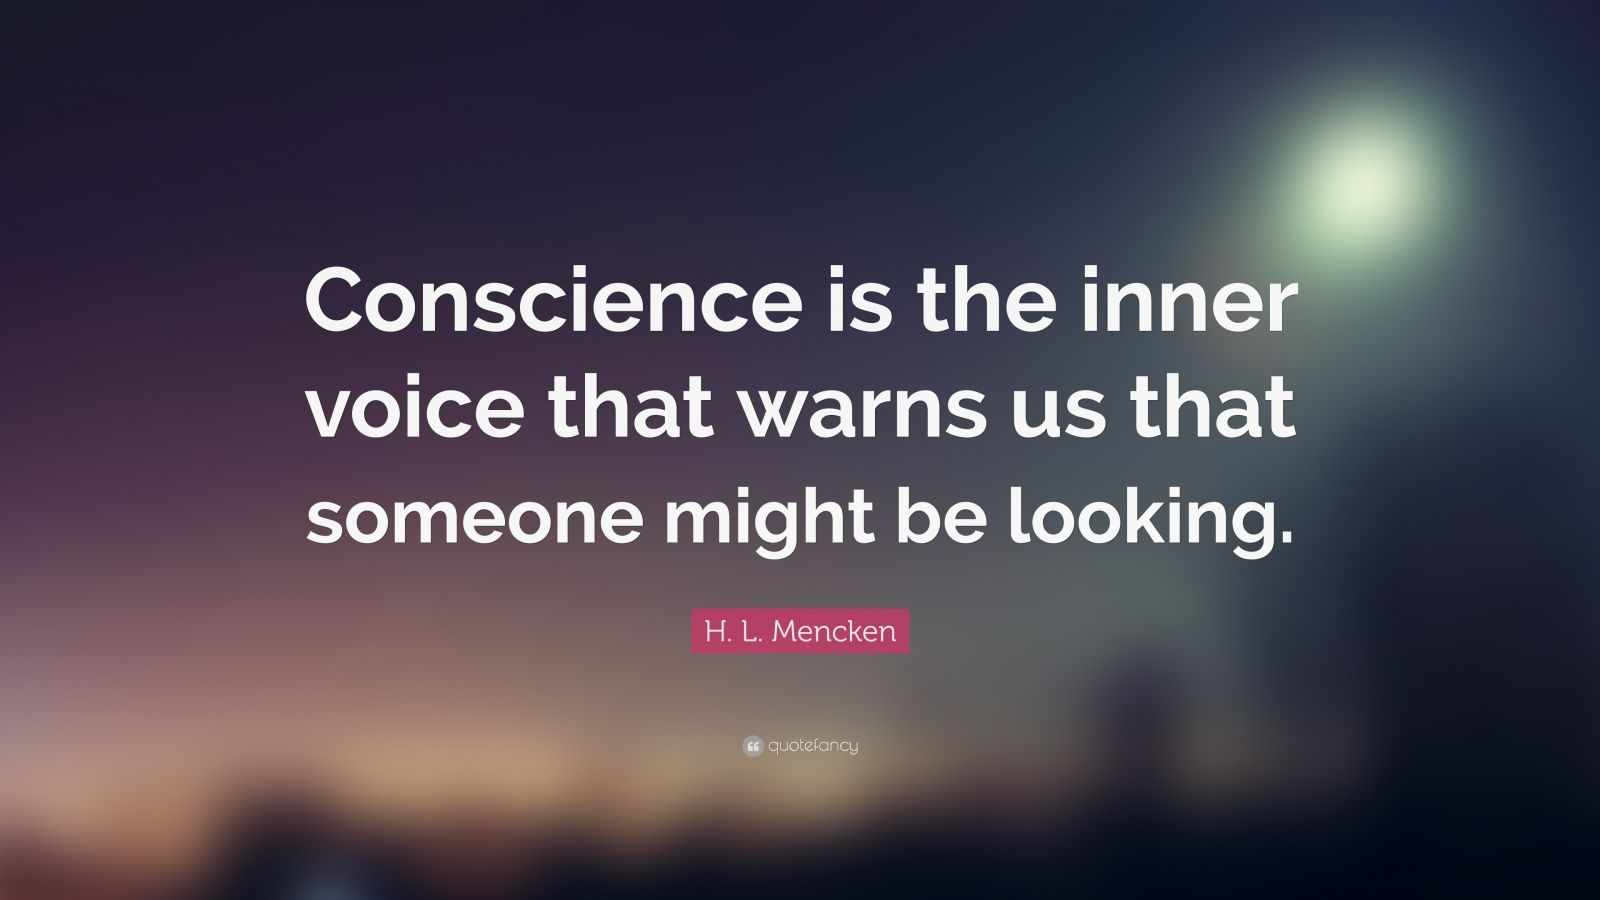 """H. L. Mencken Quote: """"Conscience is the inner voice that warns us that someone might be looking."""""""